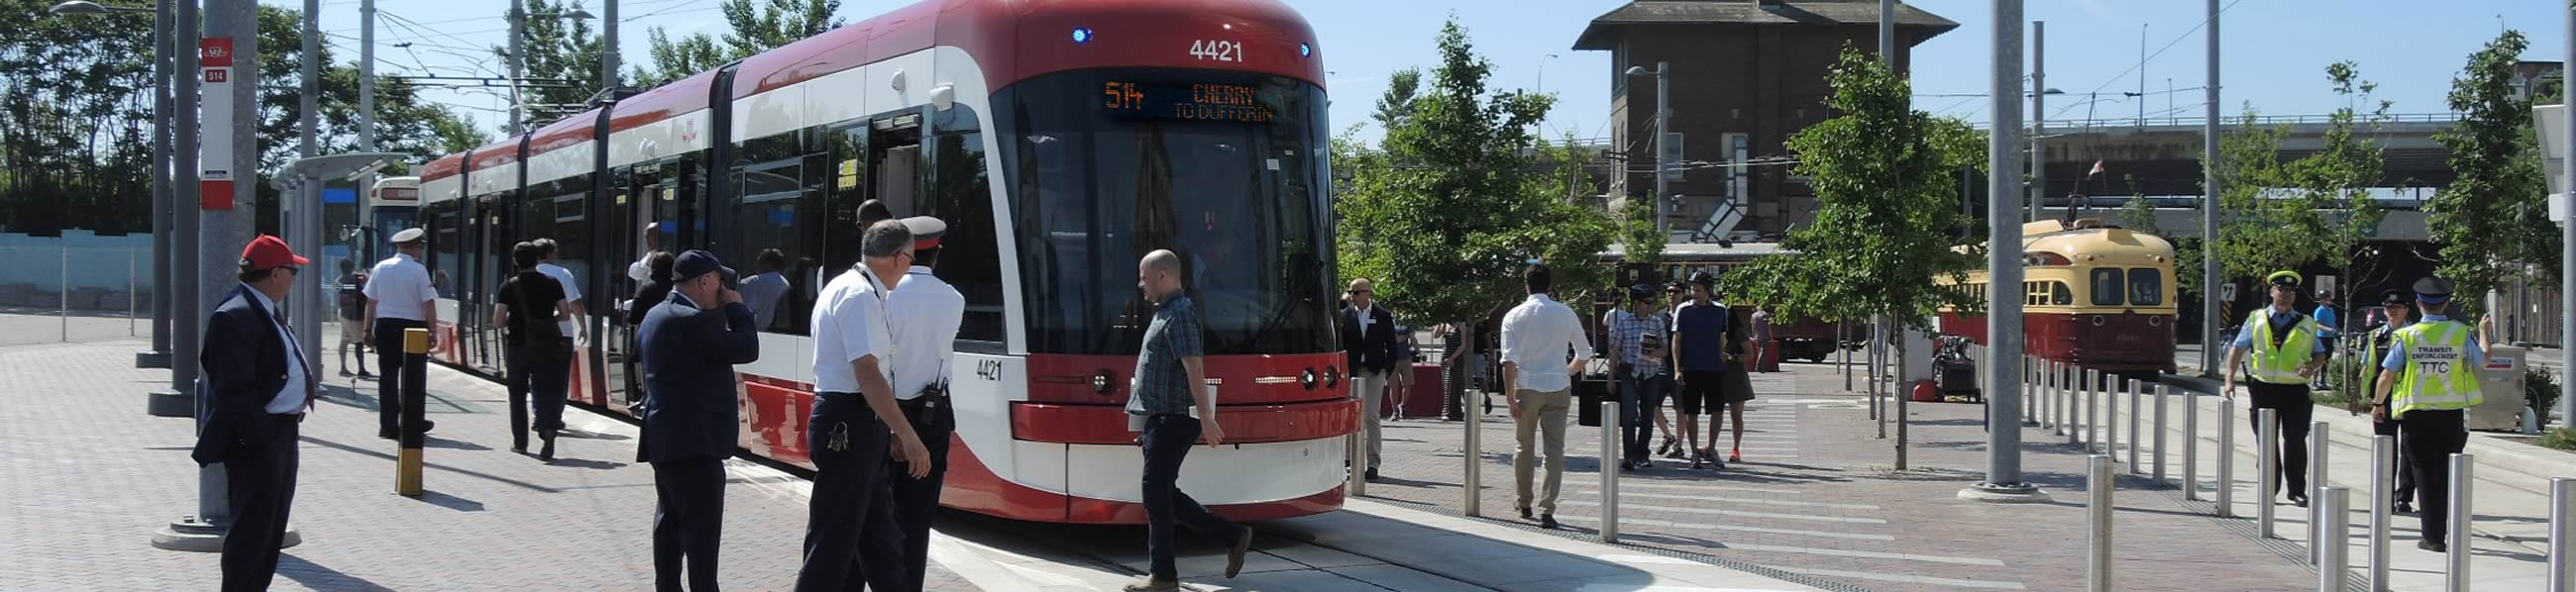 TTC Tram pulled up outside a stop